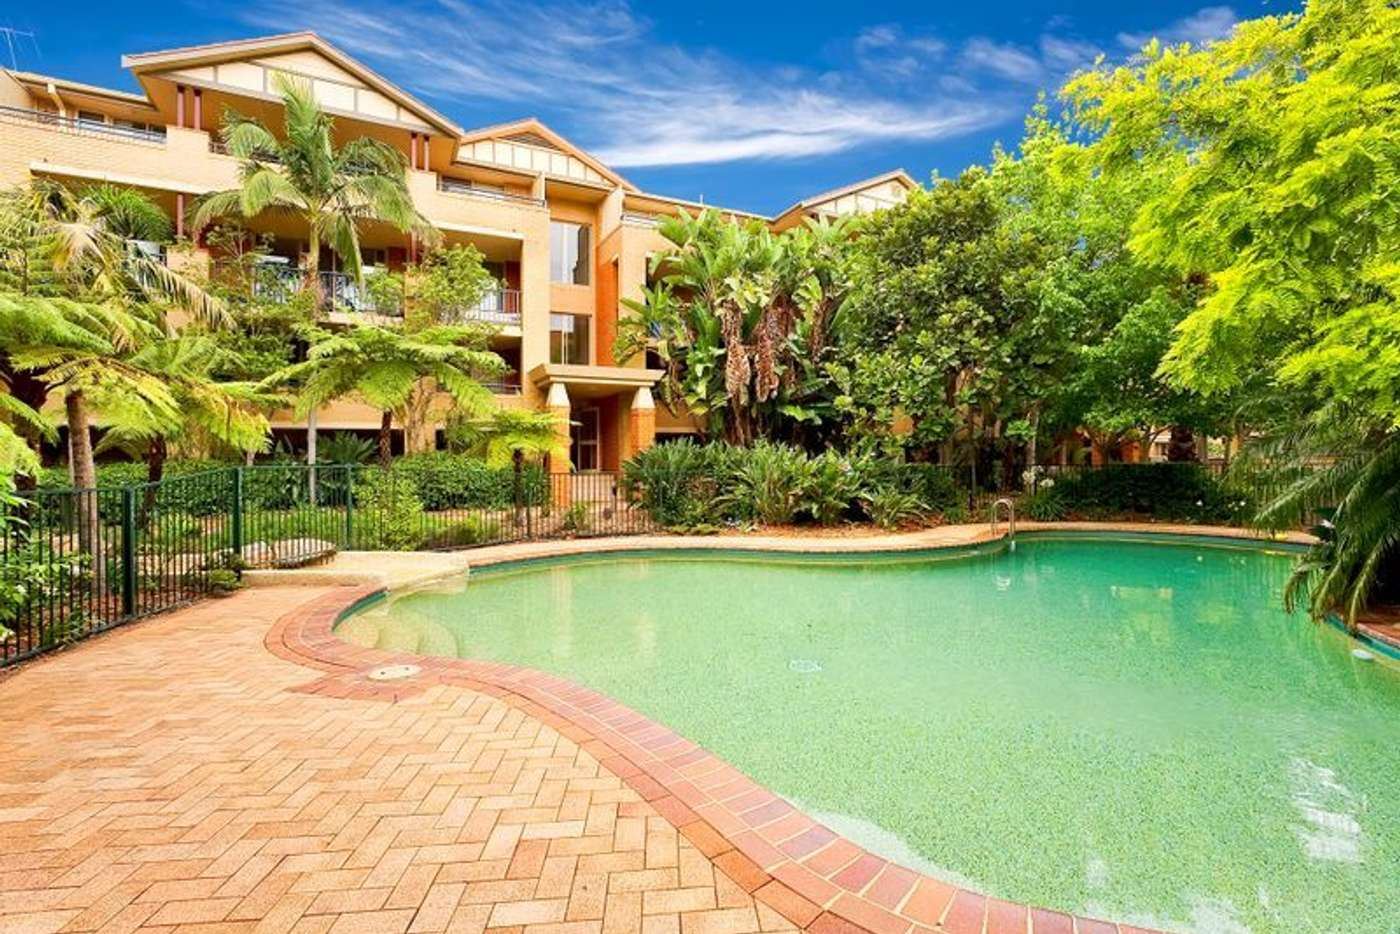 Main view of Homely apartment listing, 9J/19-21 George Street, North Strathfield NSW 2137